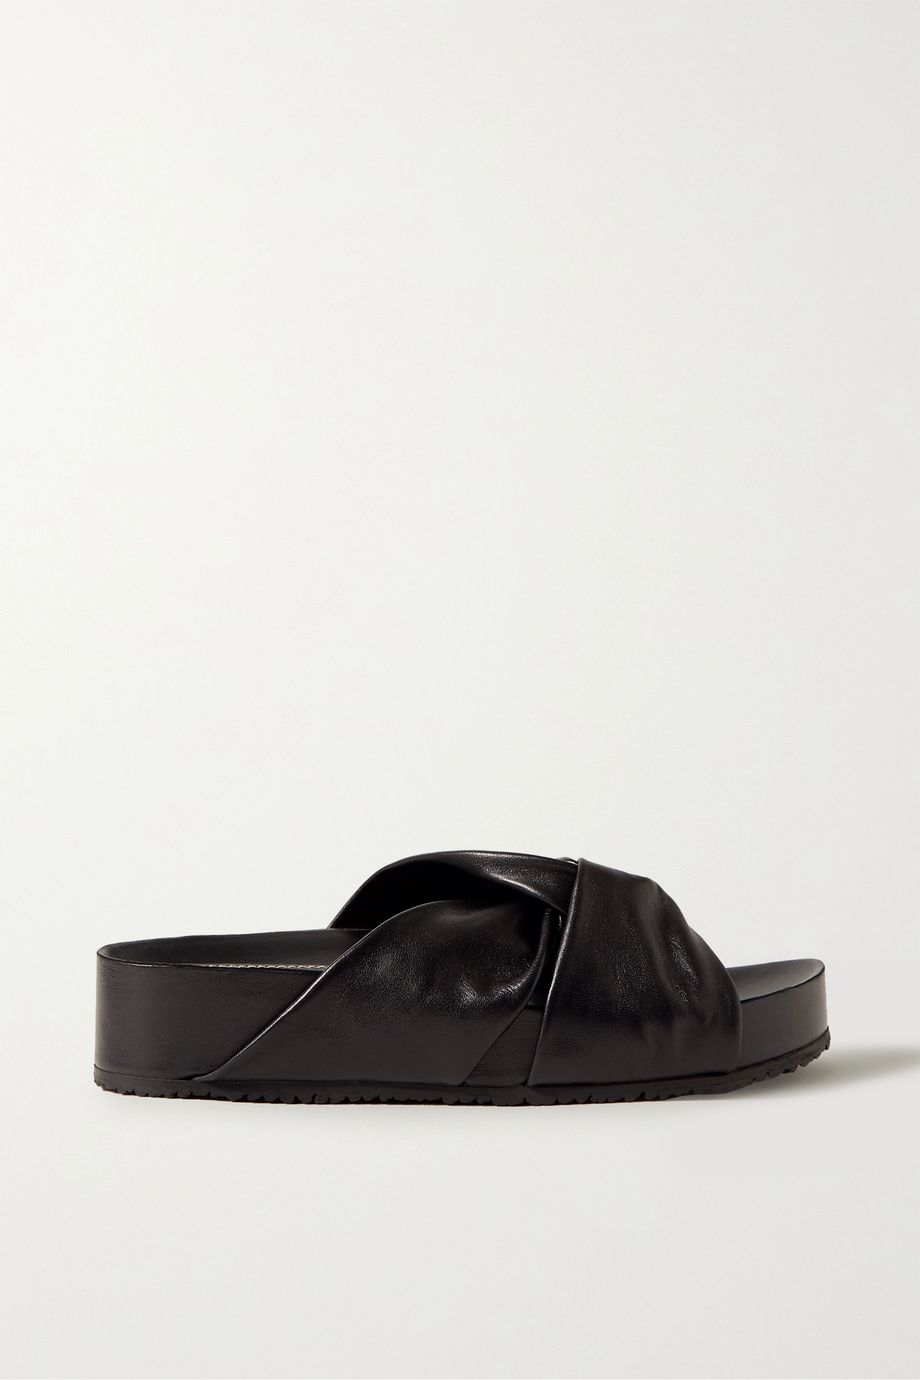 Proenza Schouler Knotted leather slides